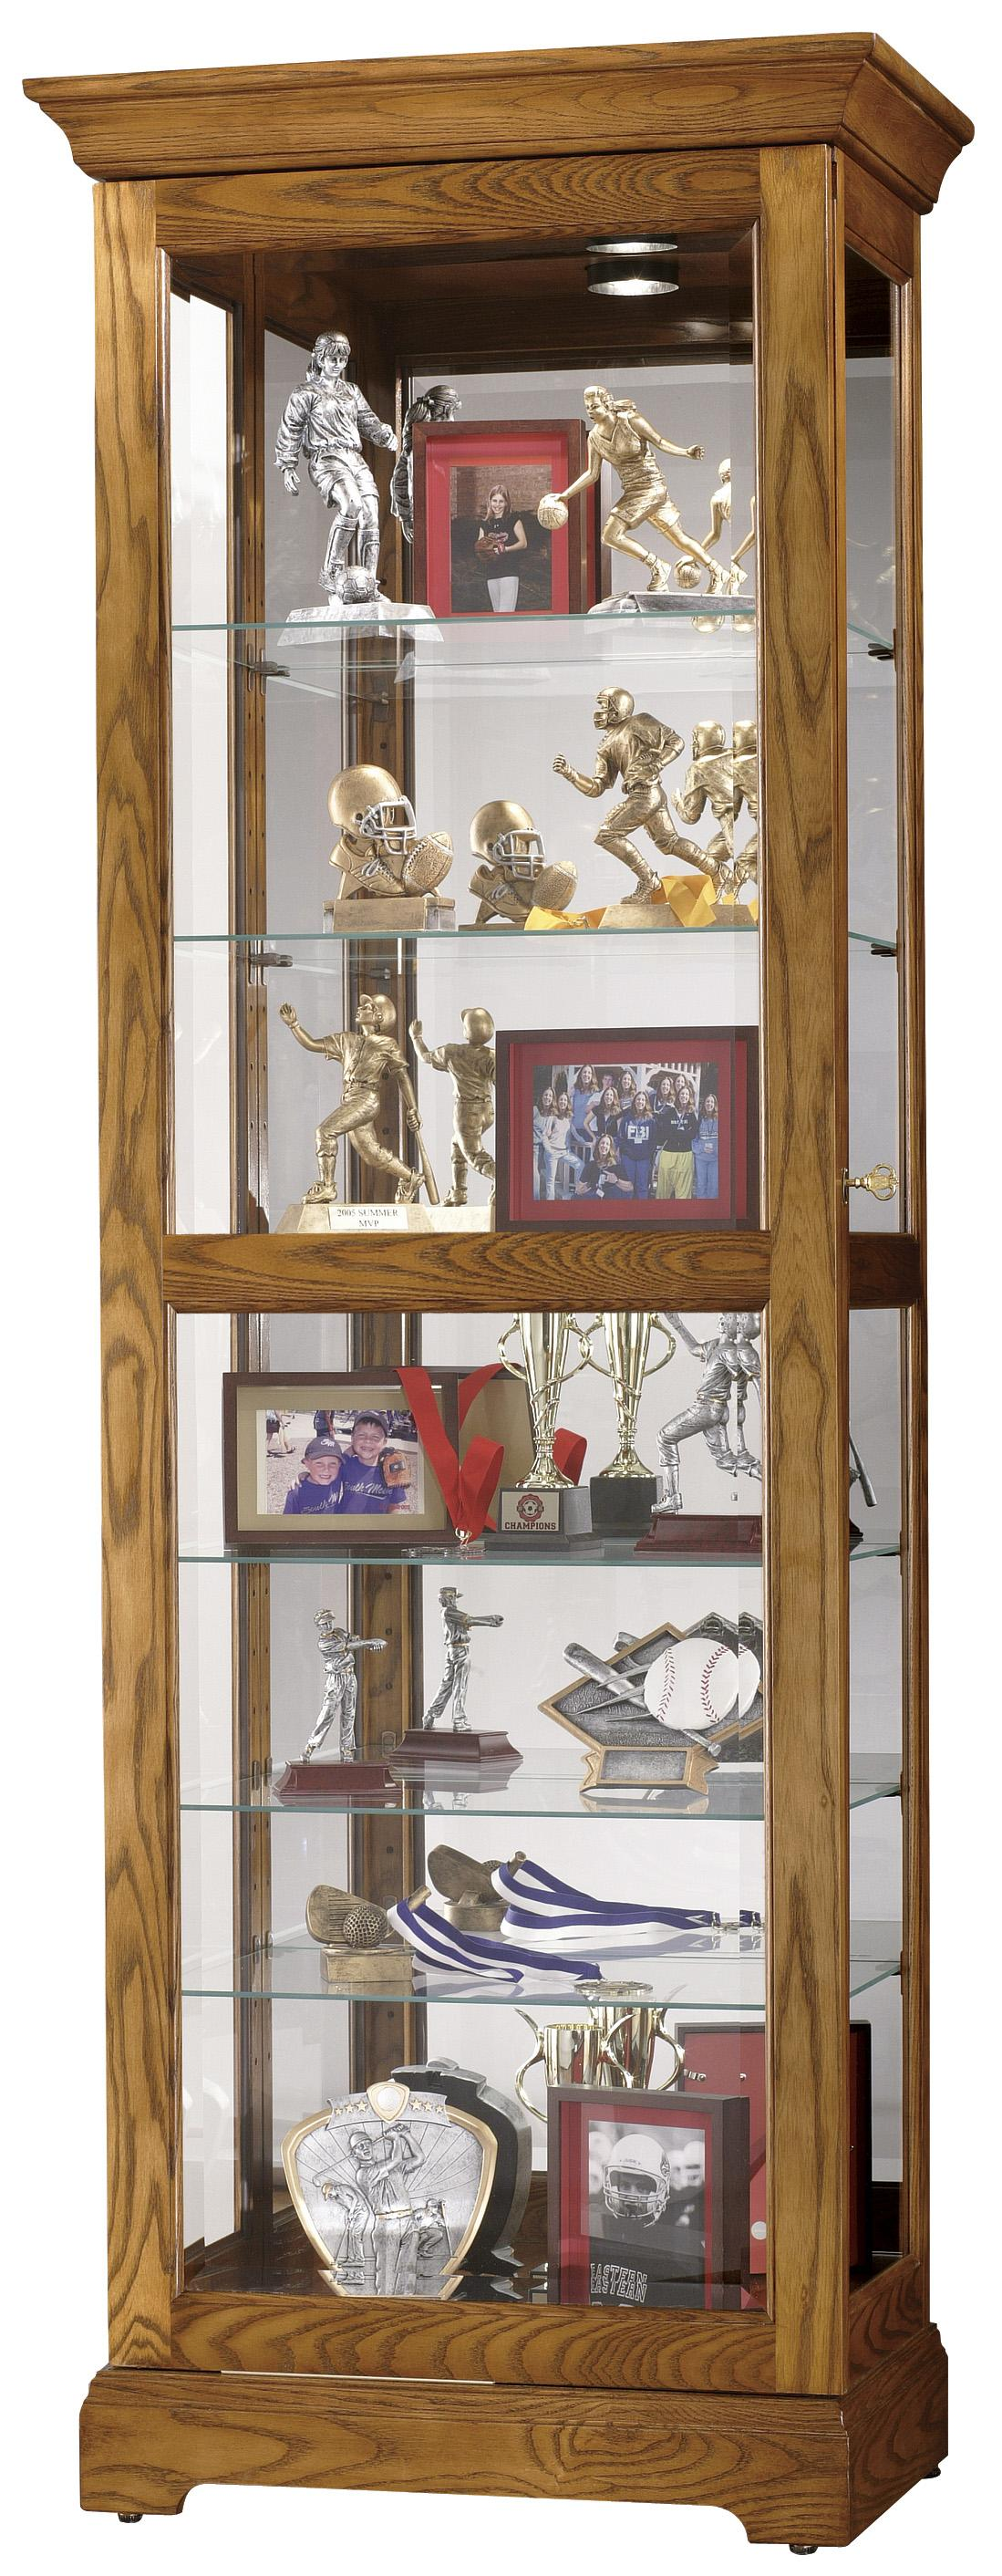 Howard Miller Furniture Trend Designs Curios Moorland Display Cabinet - Item Number: 680-471